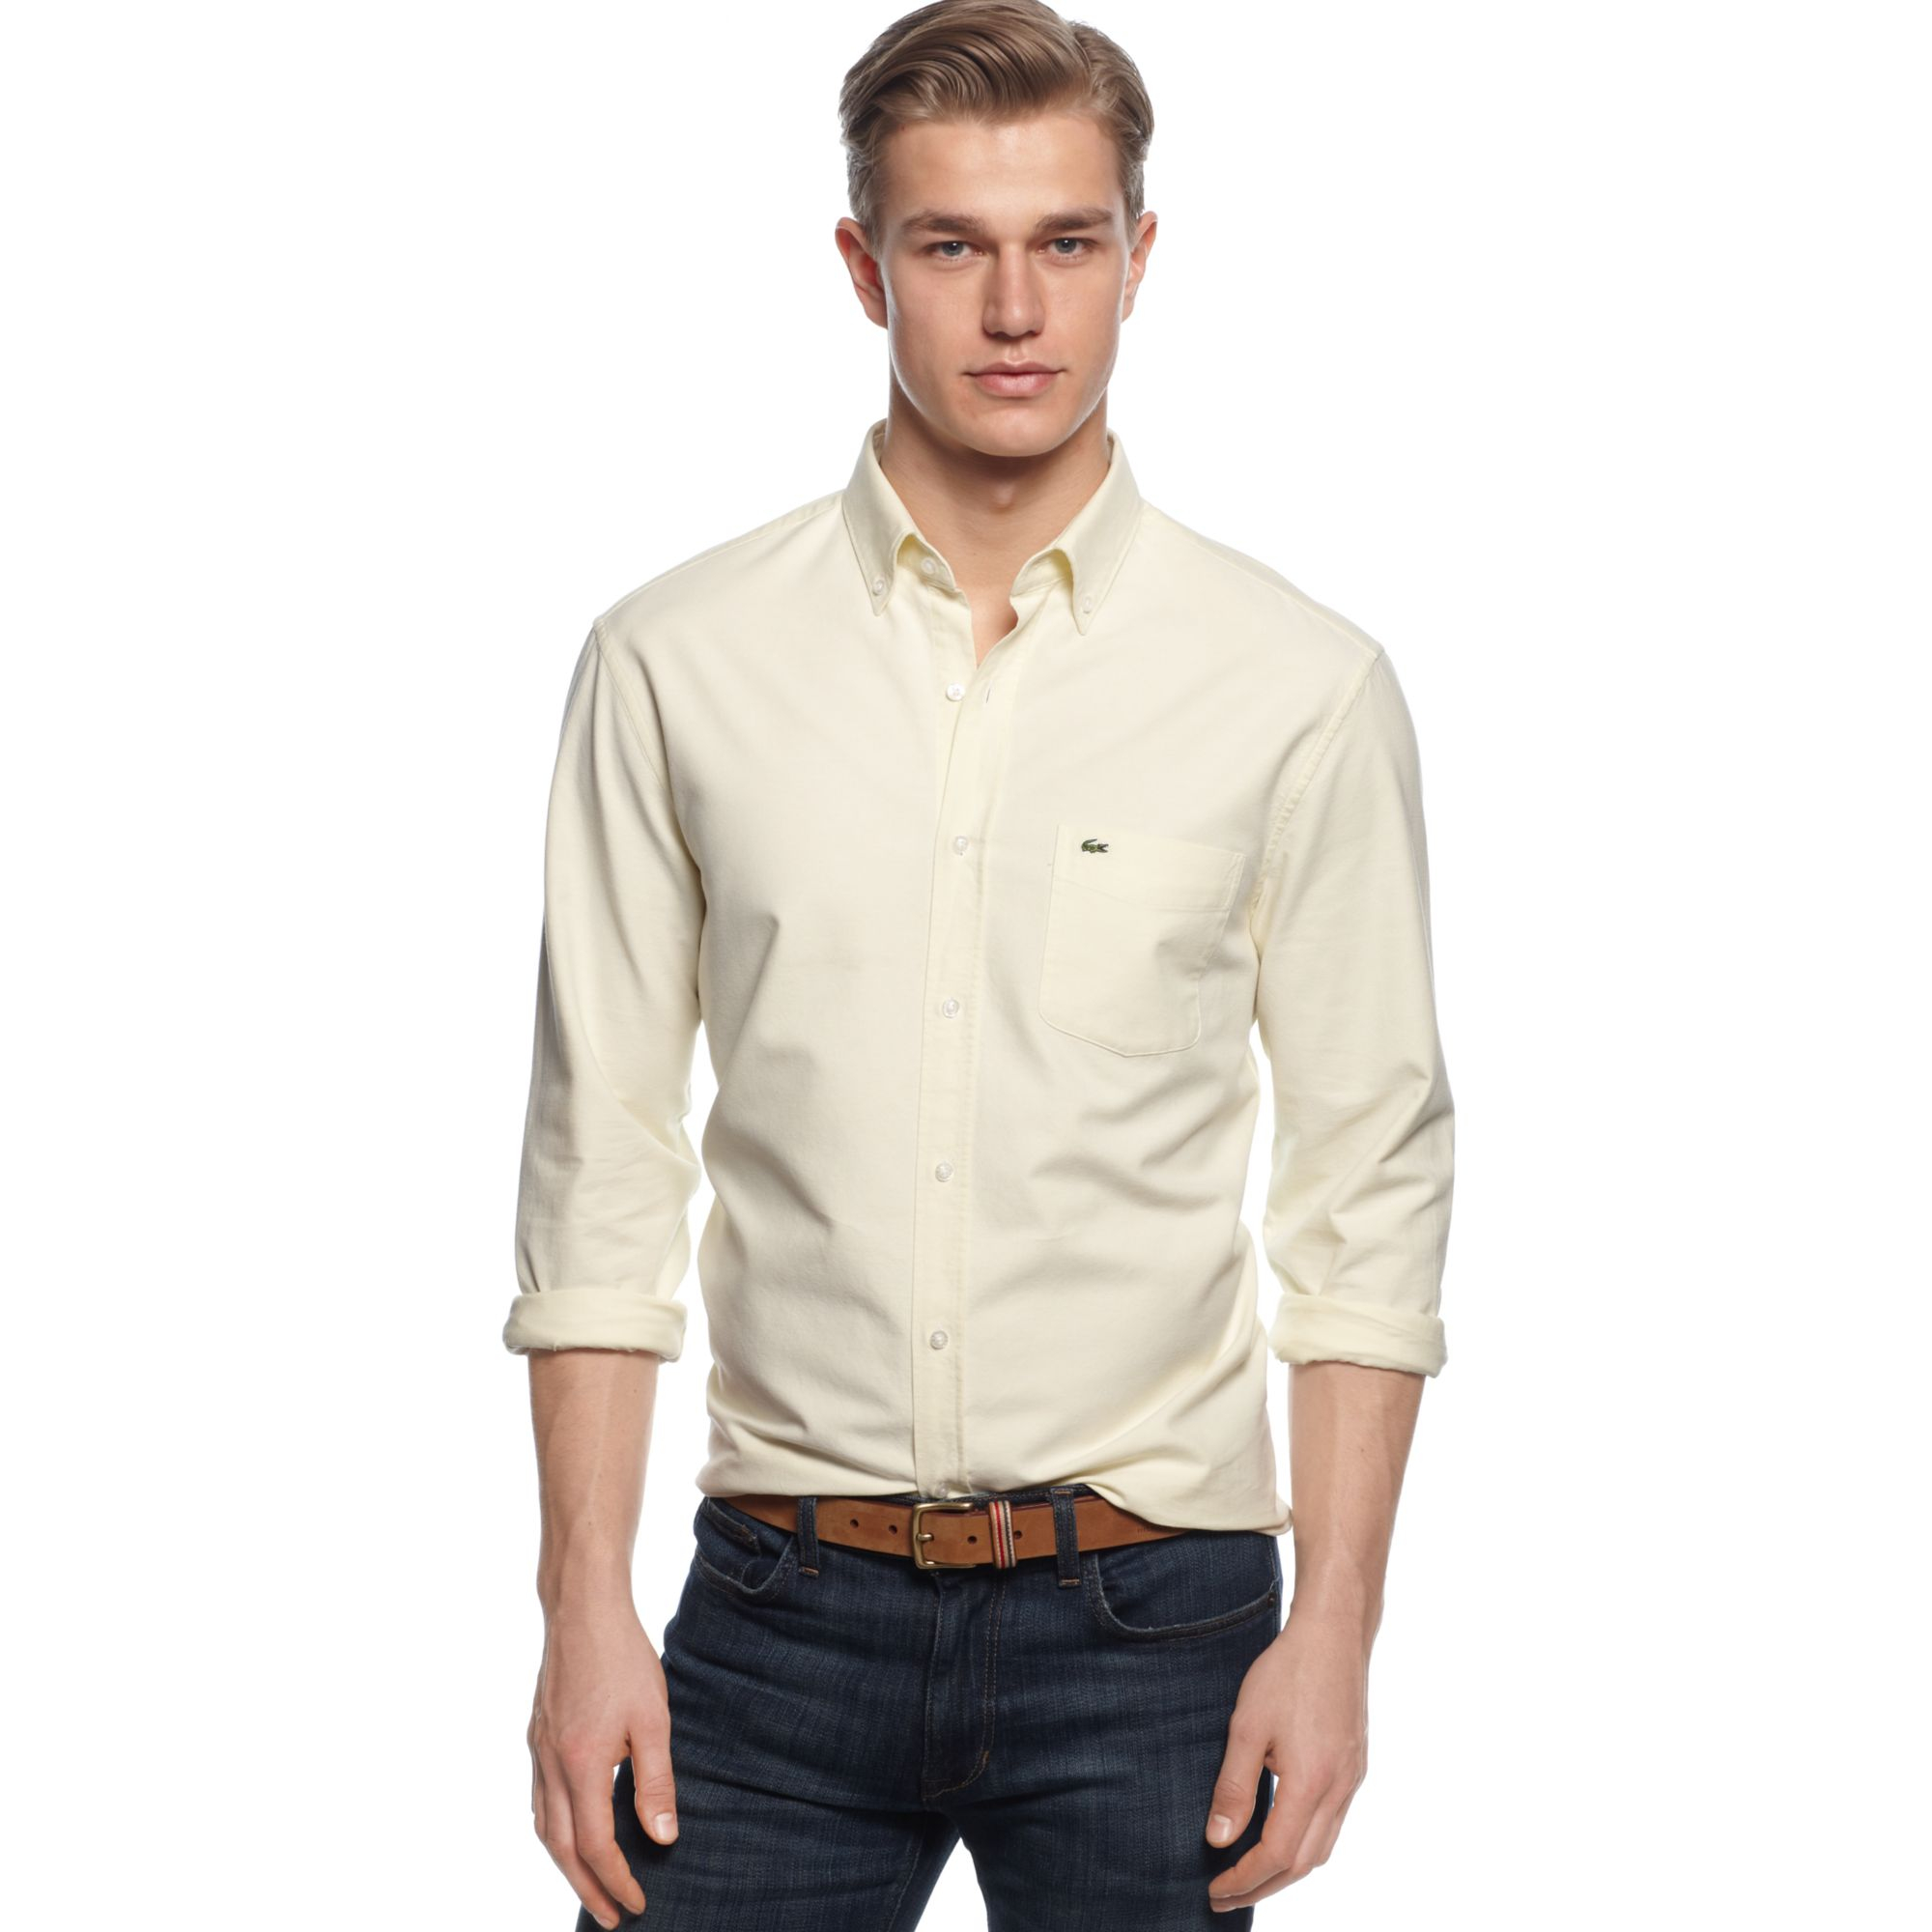 Men s oxford button down shirts artee shirt for Oxford long sleeve button down shirt